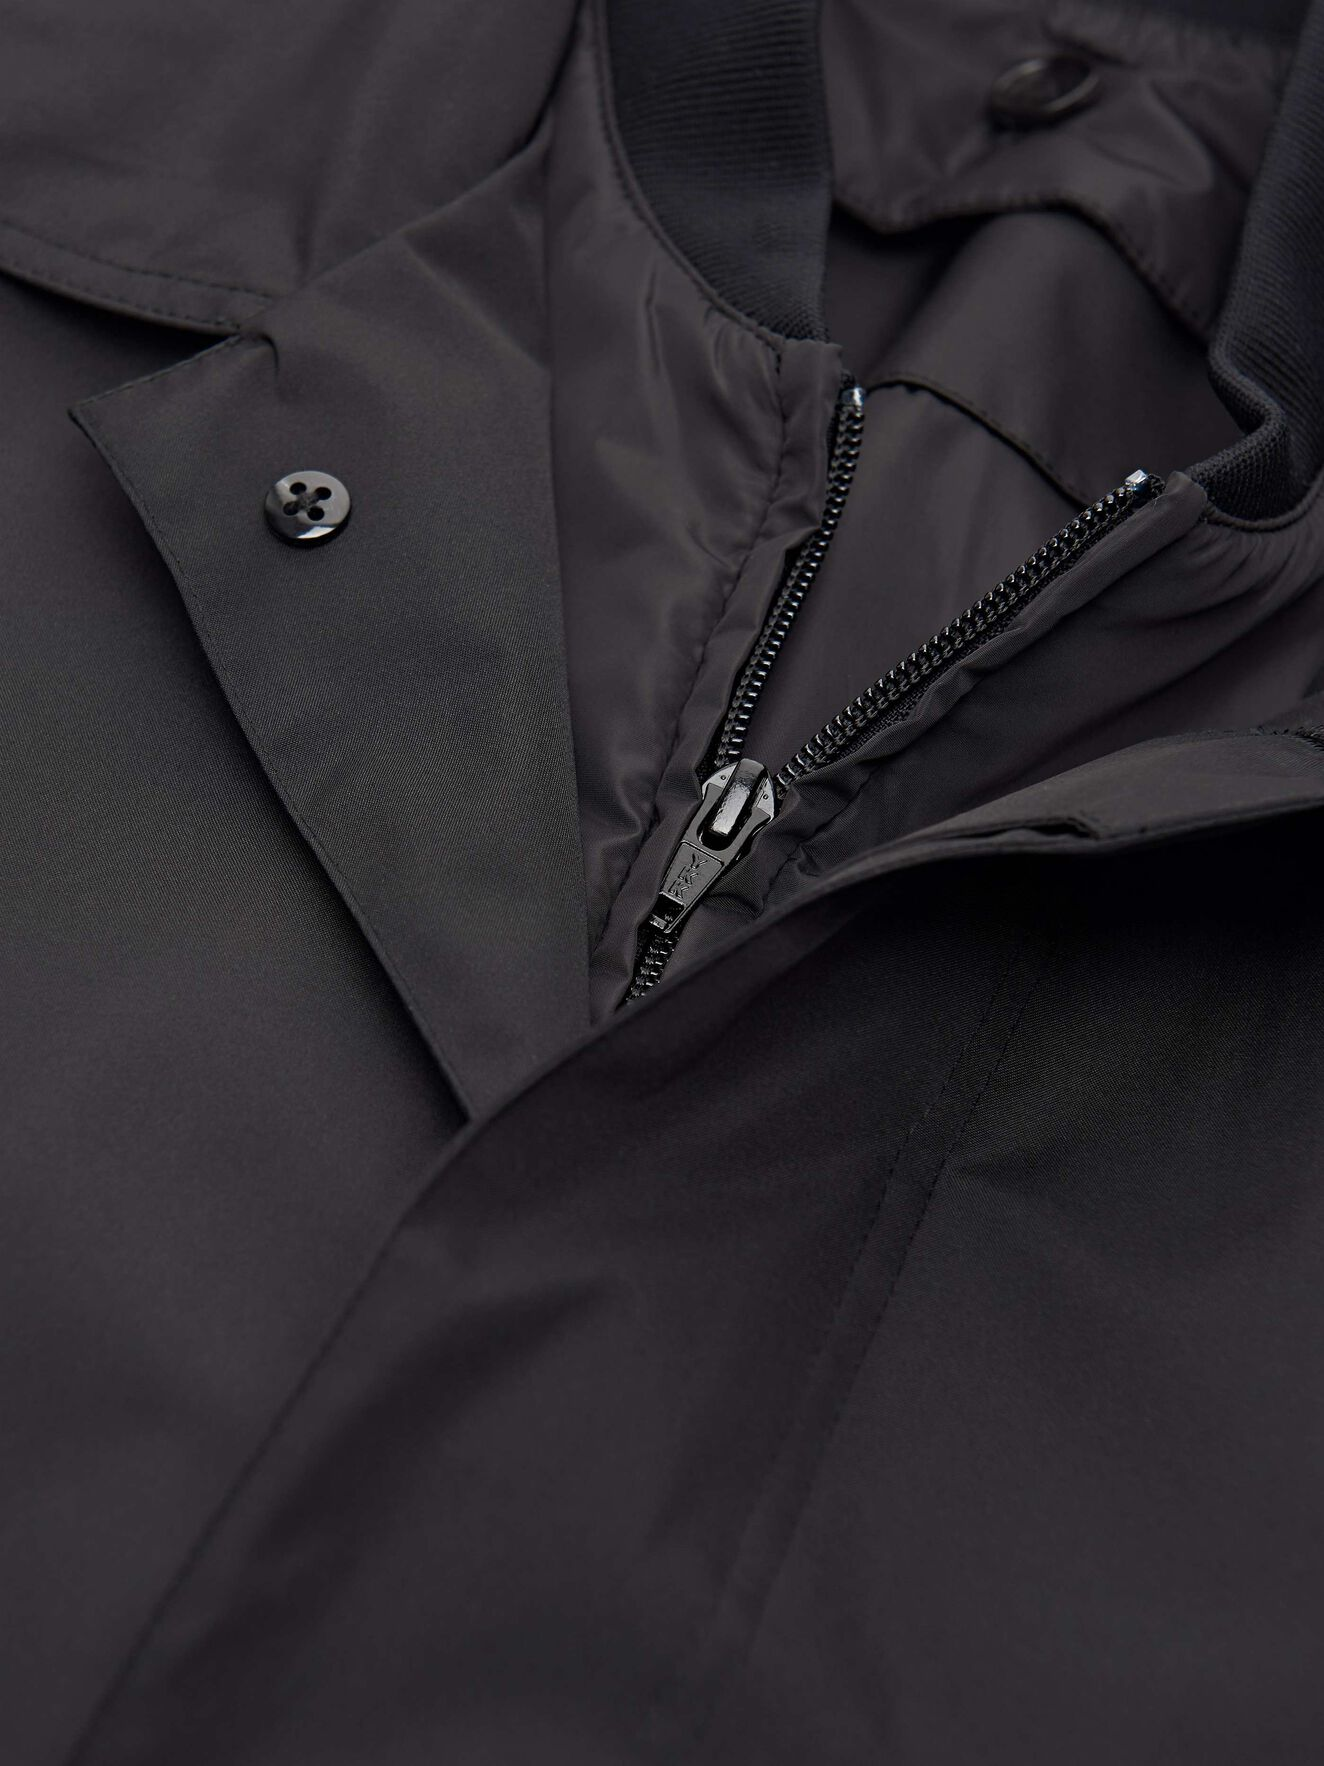 Crandall Coat in Black from Tiger of Sweden